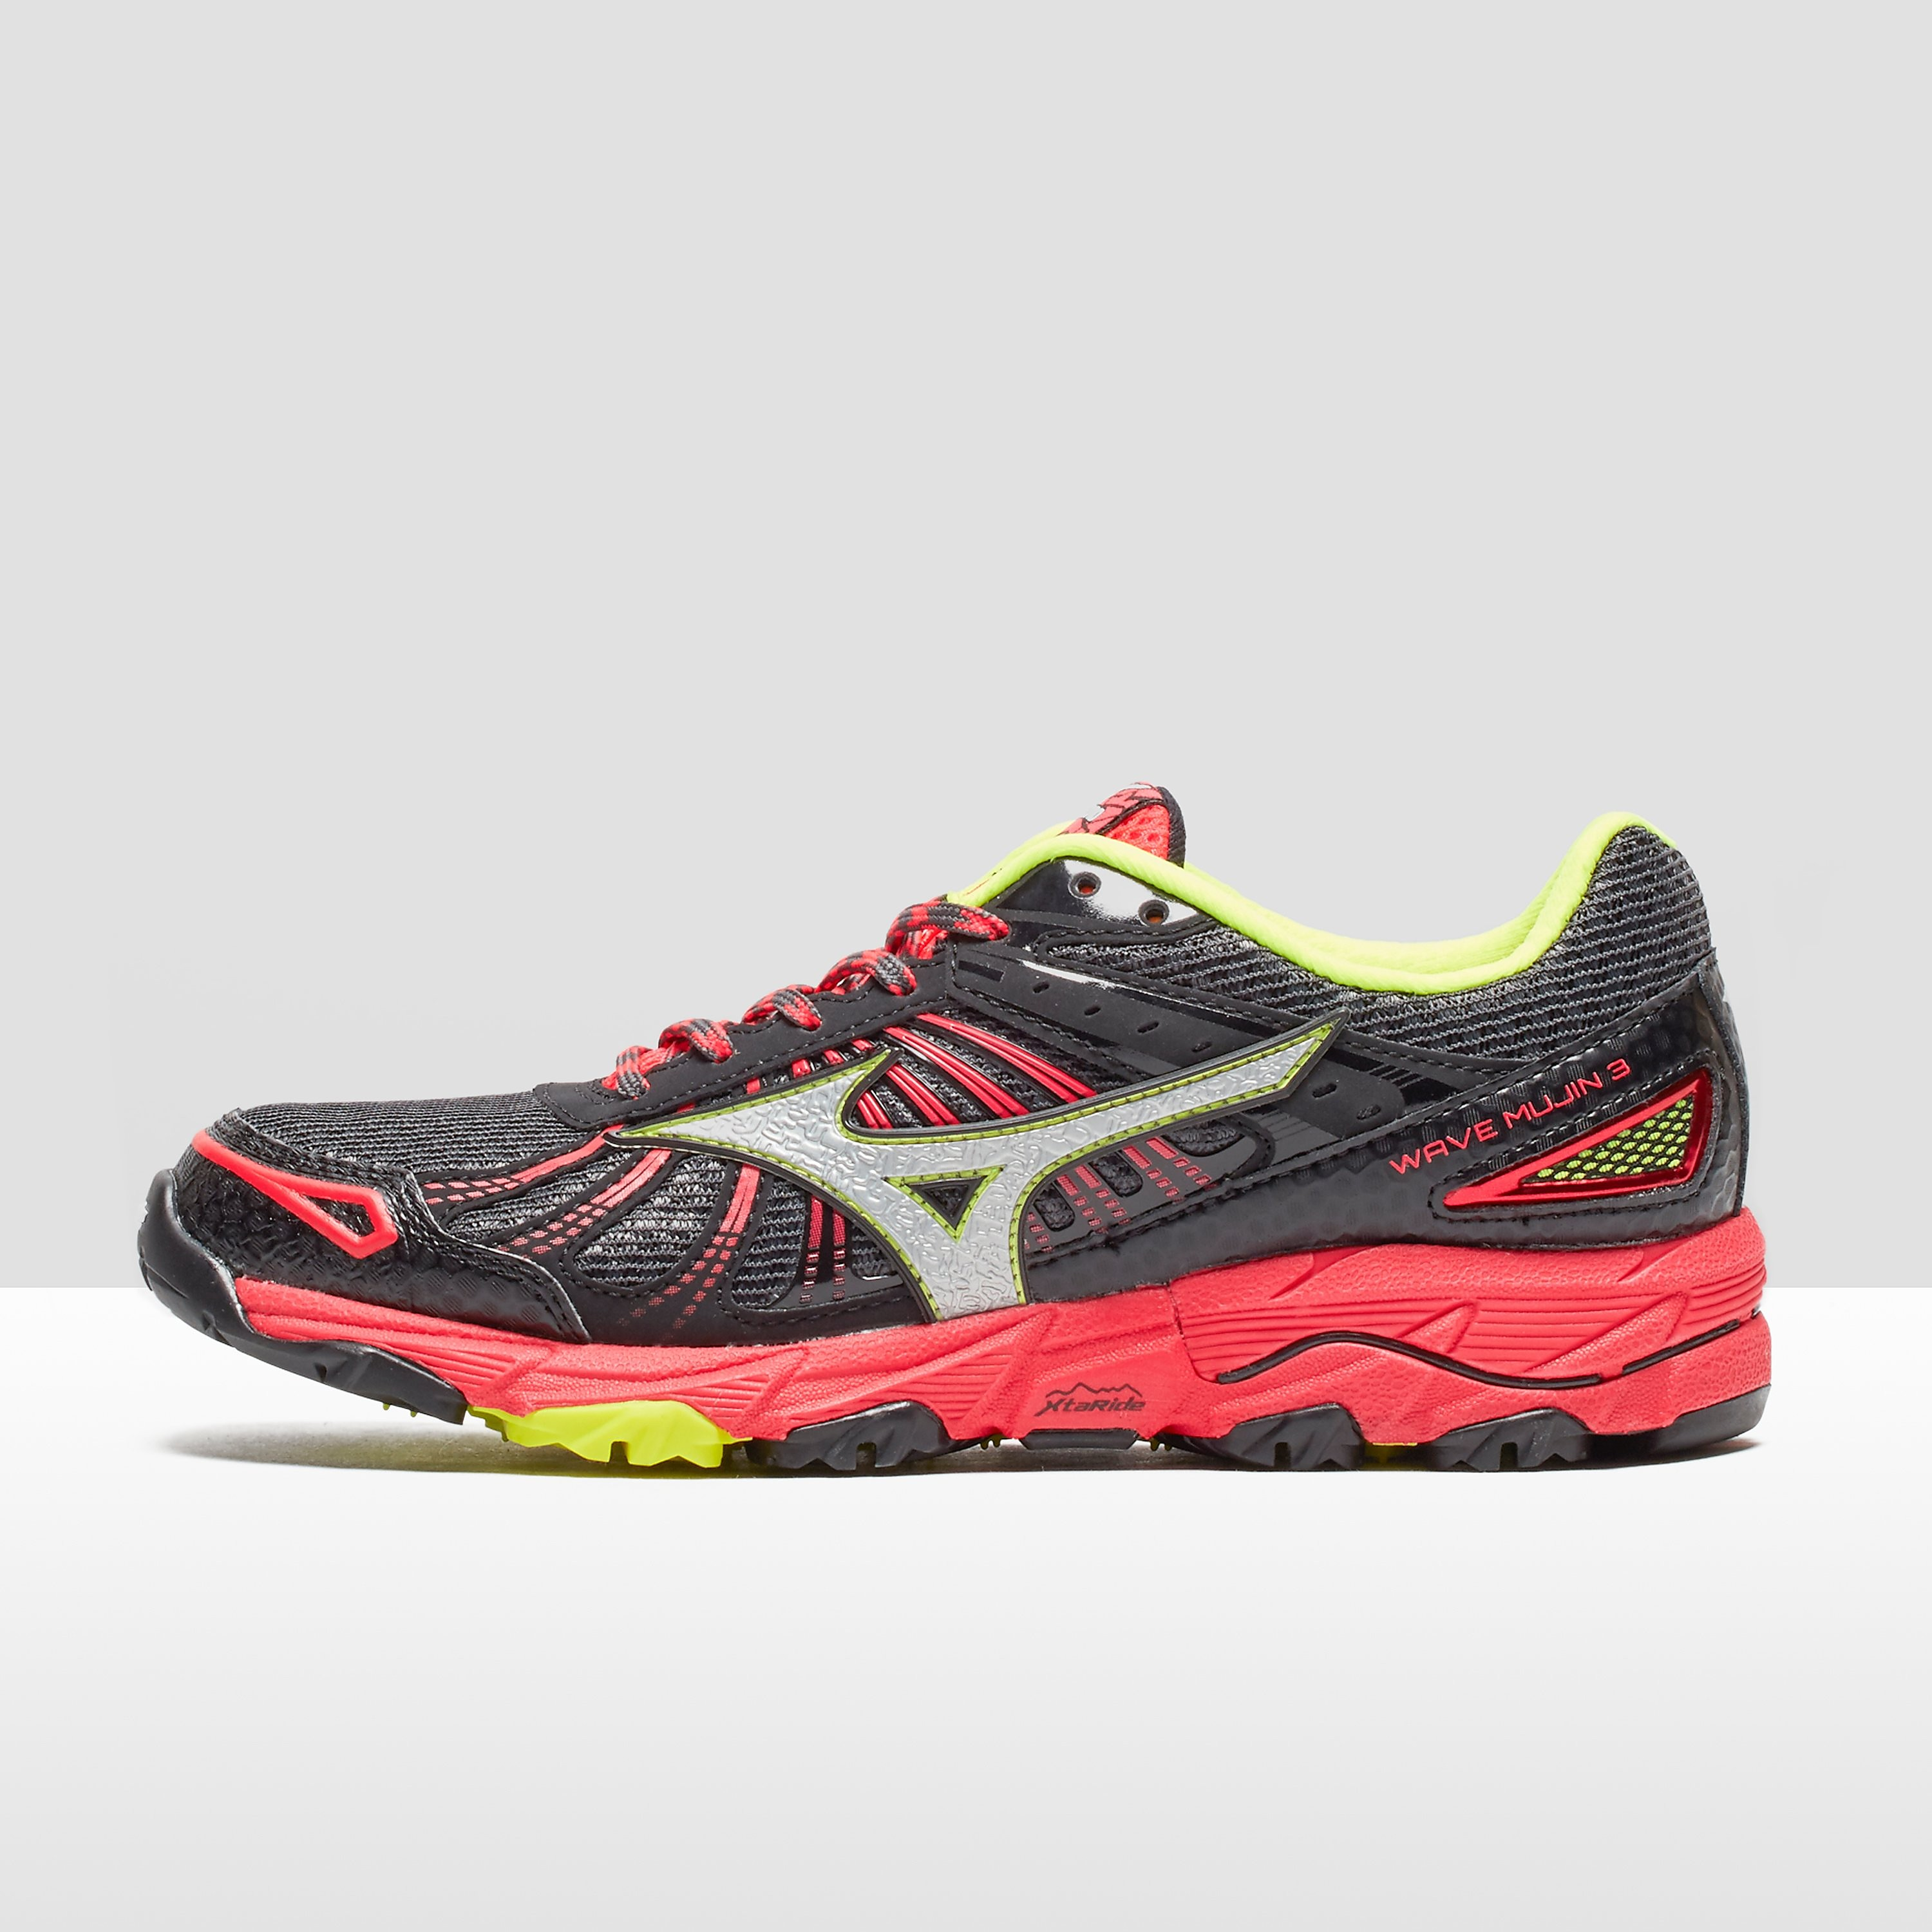 Mizuno Mujin 3 Women's Trail Running Shoes